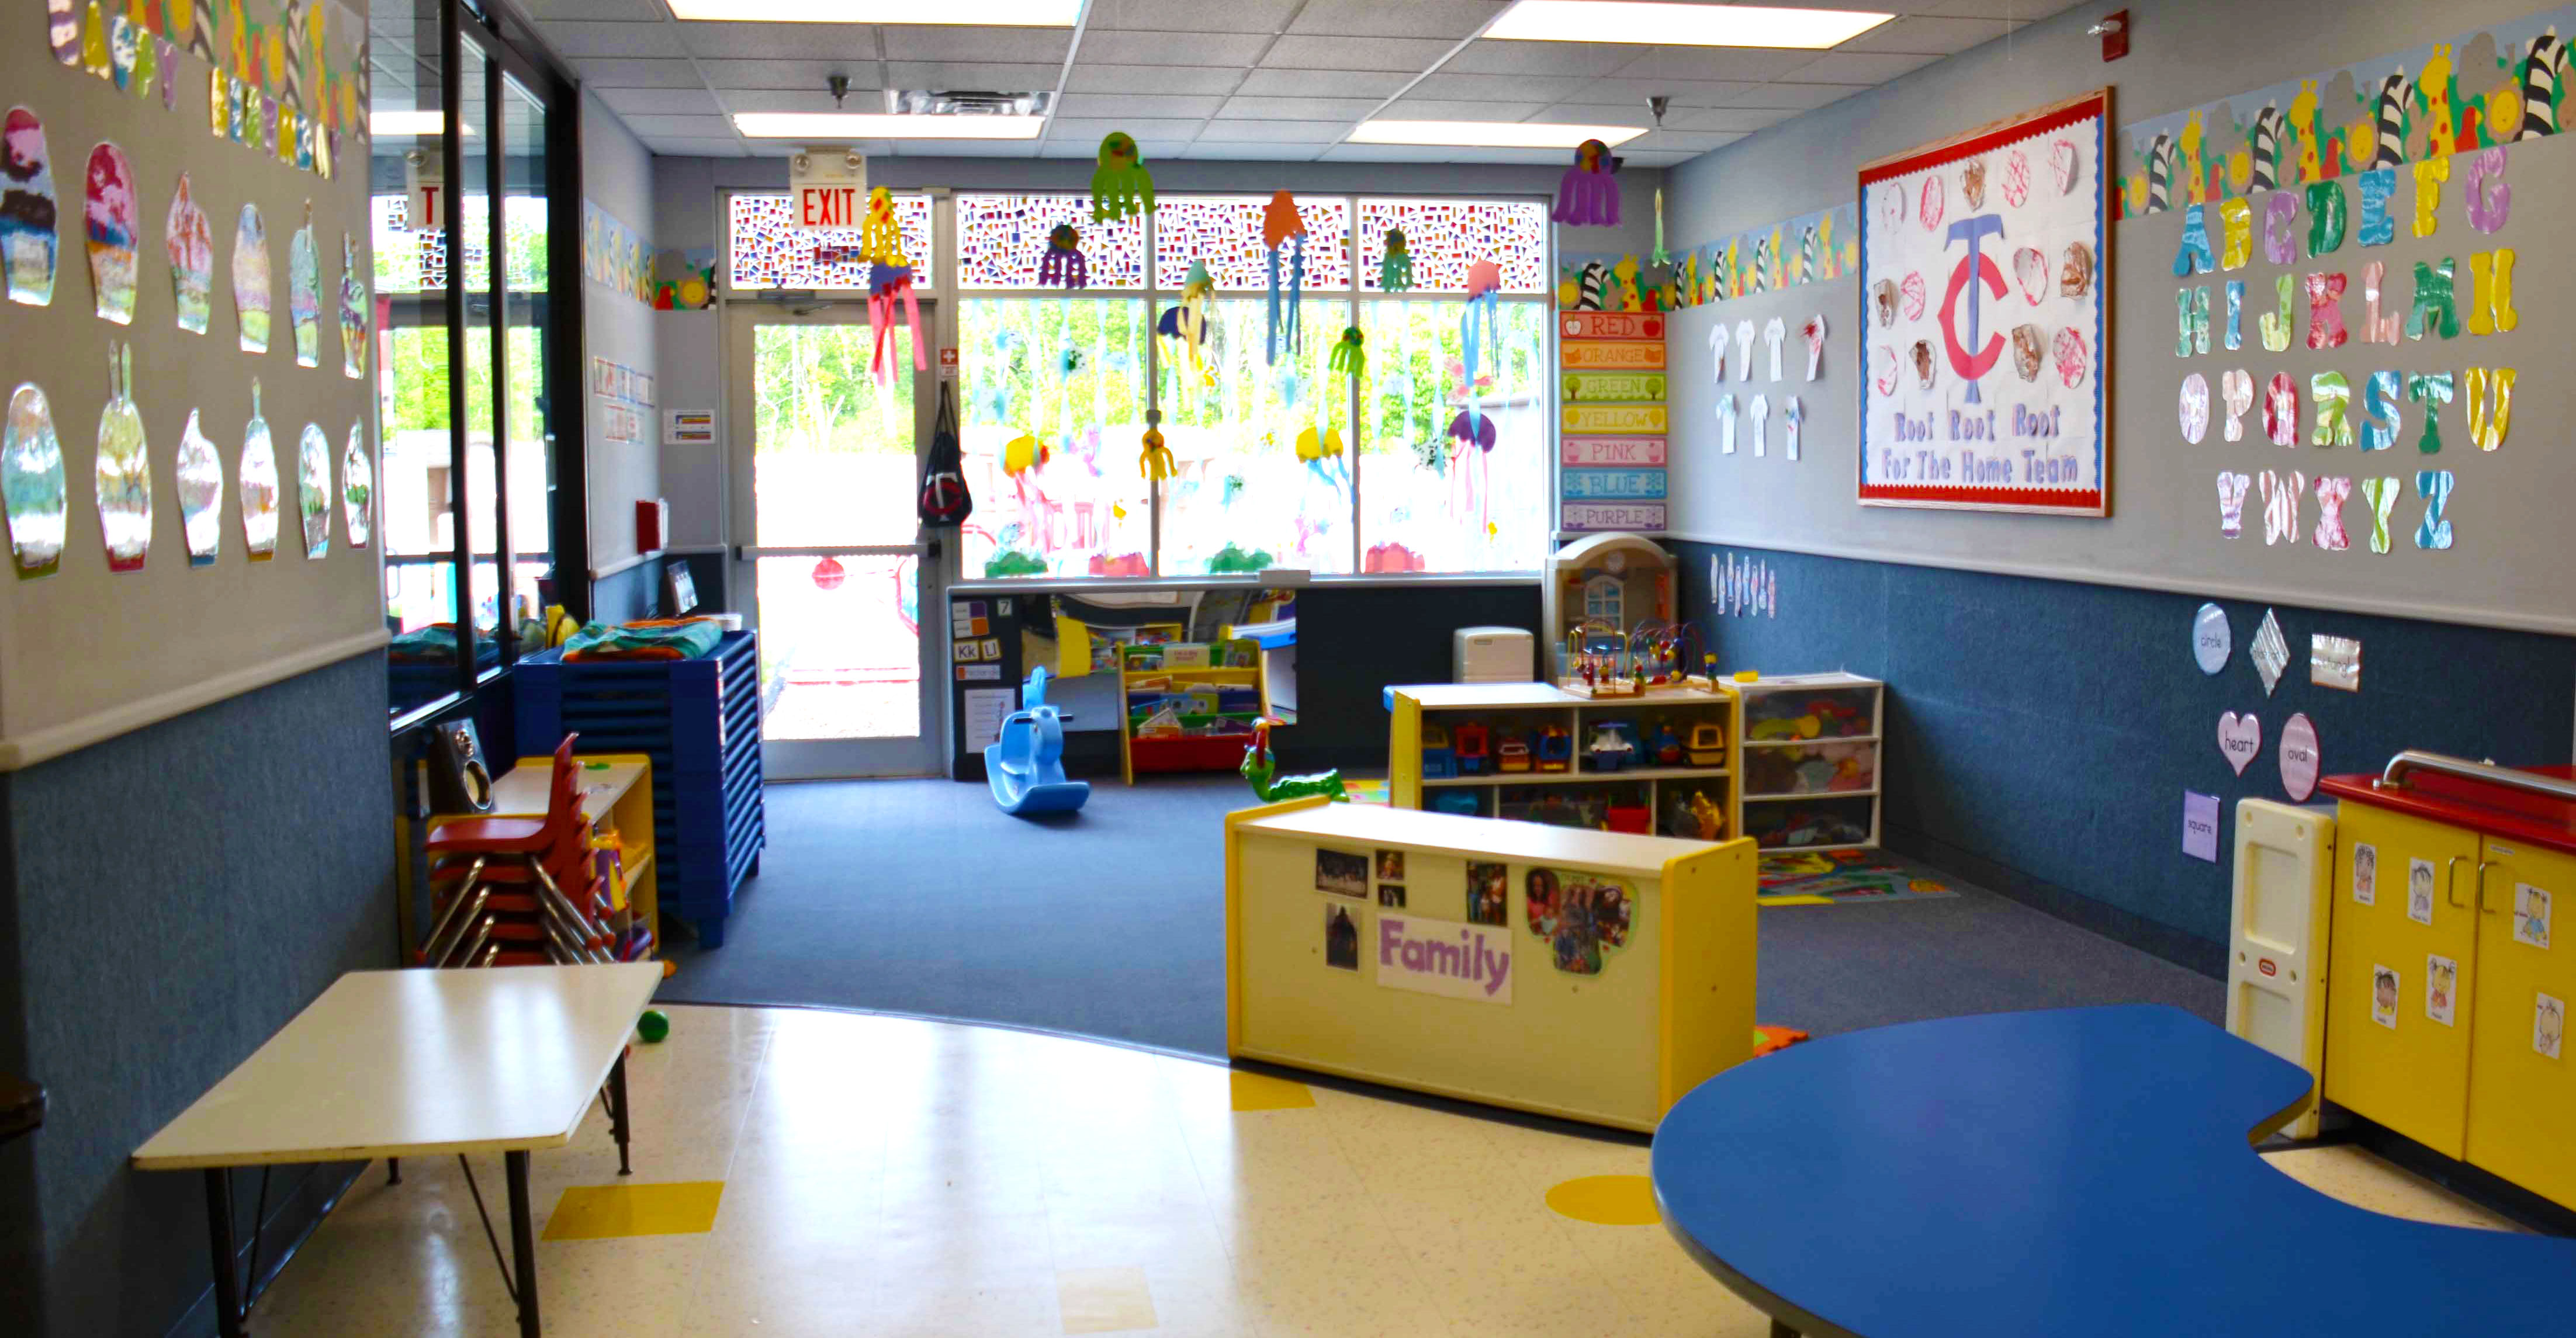 Dawn_of_Discovery_Elk_River_MN_Toddler_Classroom-with-Artwork_Updated.jpg